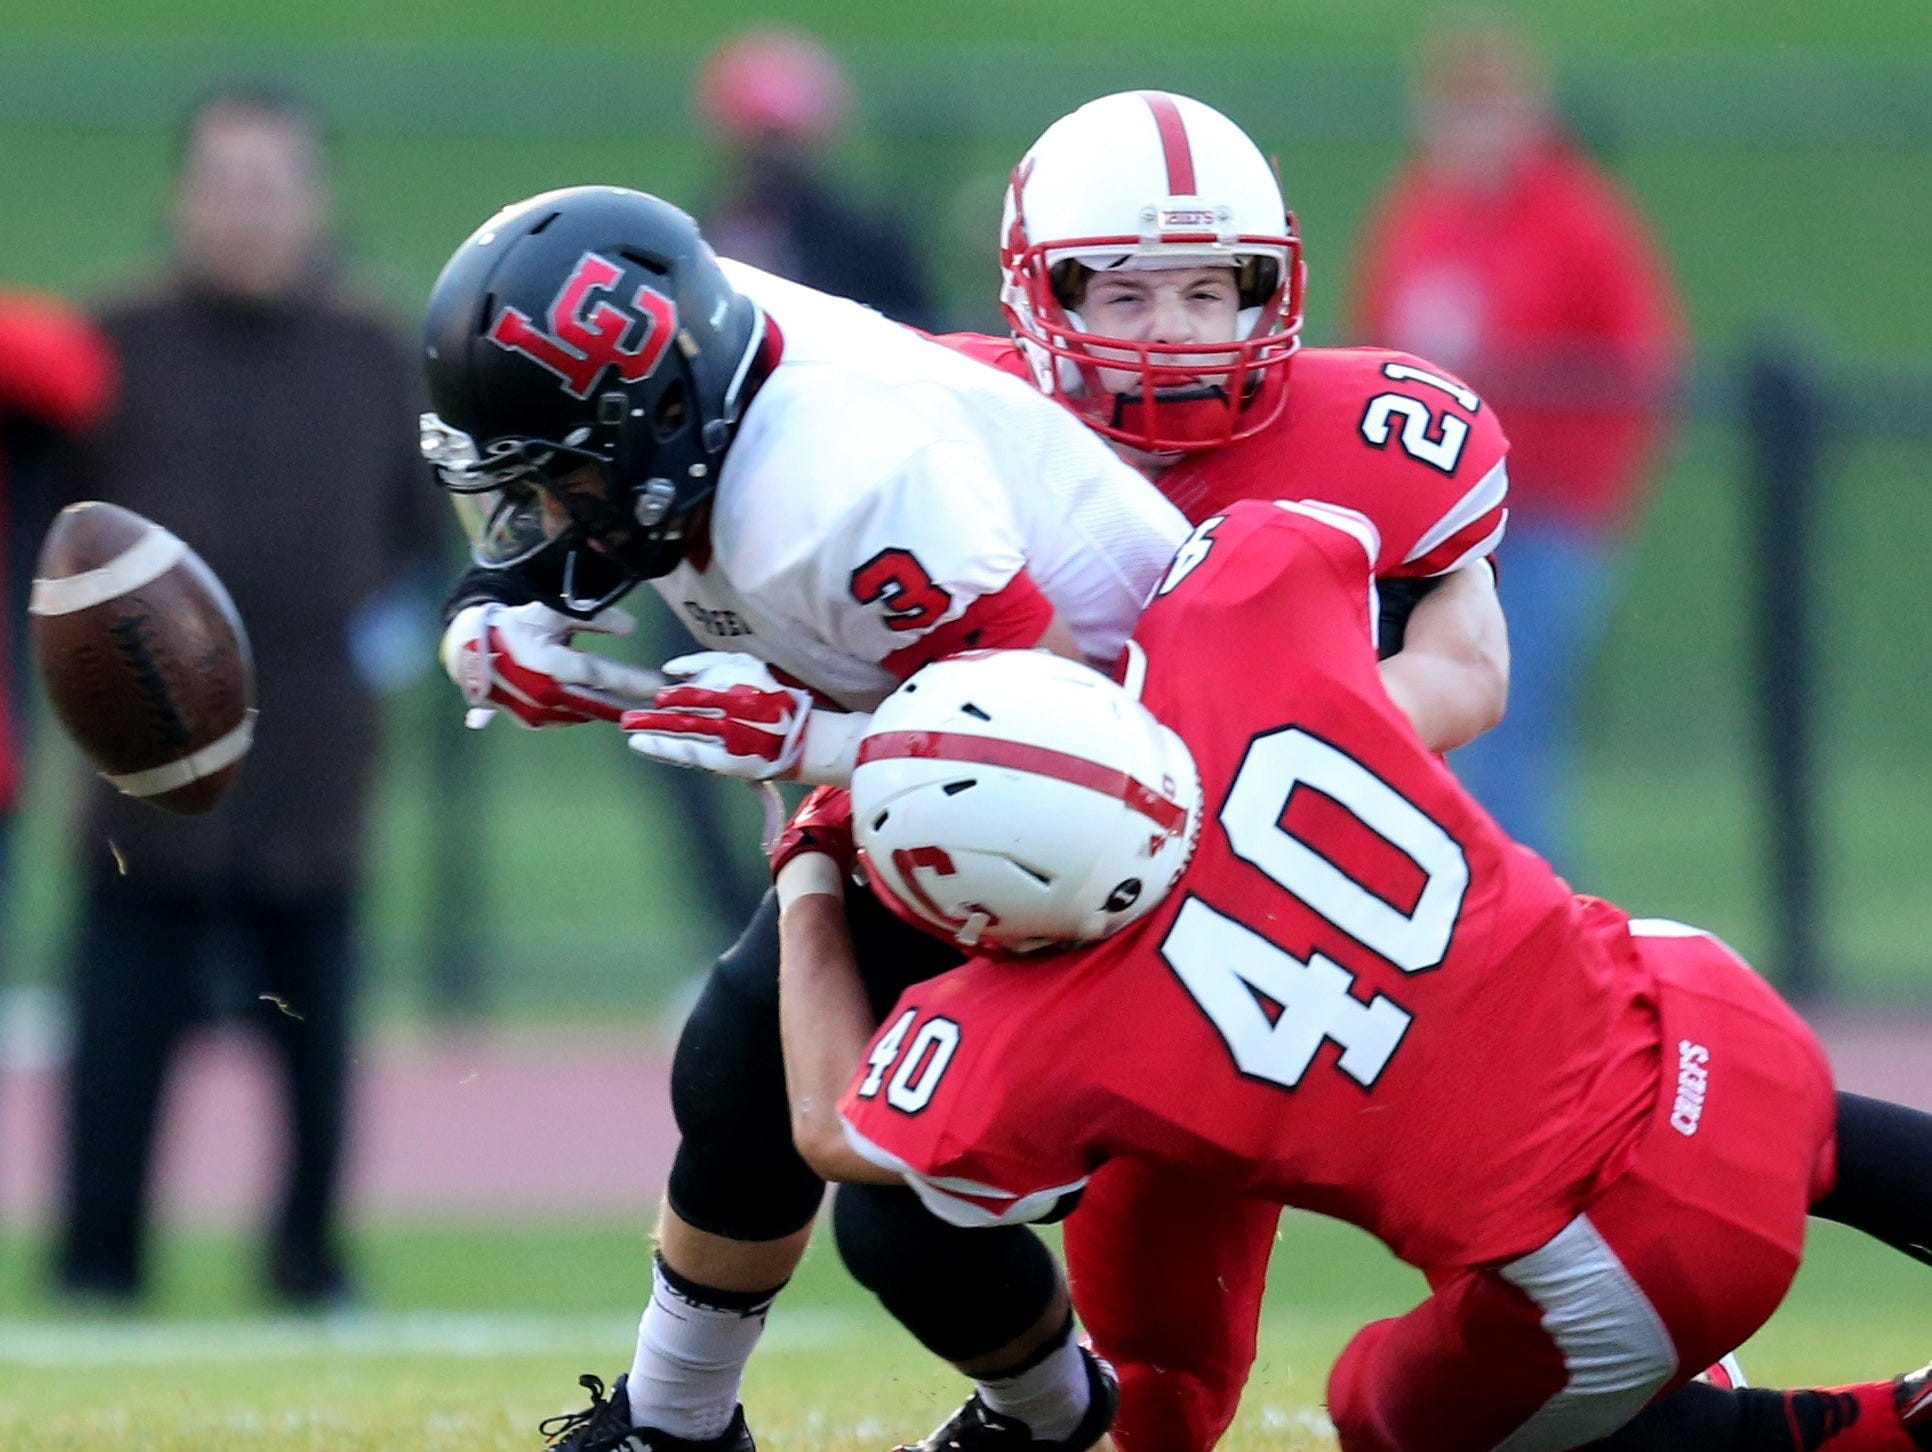 Livonia Churchill's Dylan Padget fumbles after being hit by Canton's Jacob Stephan on Oct. 3, 2014.